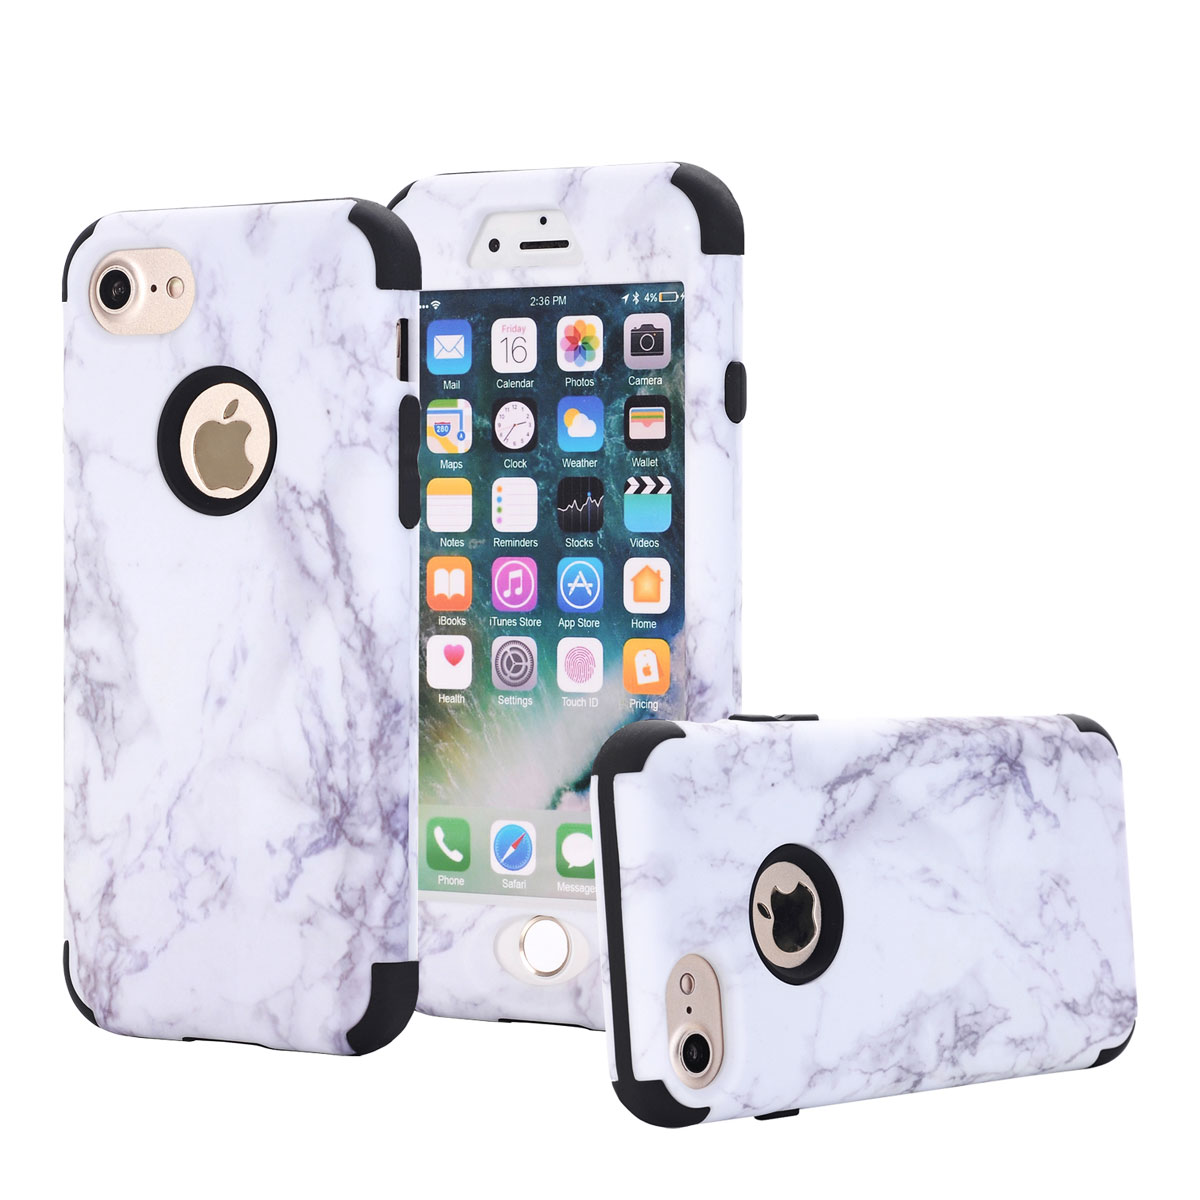 Stylish Granite Marble Pattern Hard Protective Cover For Apple ... 47a525605c